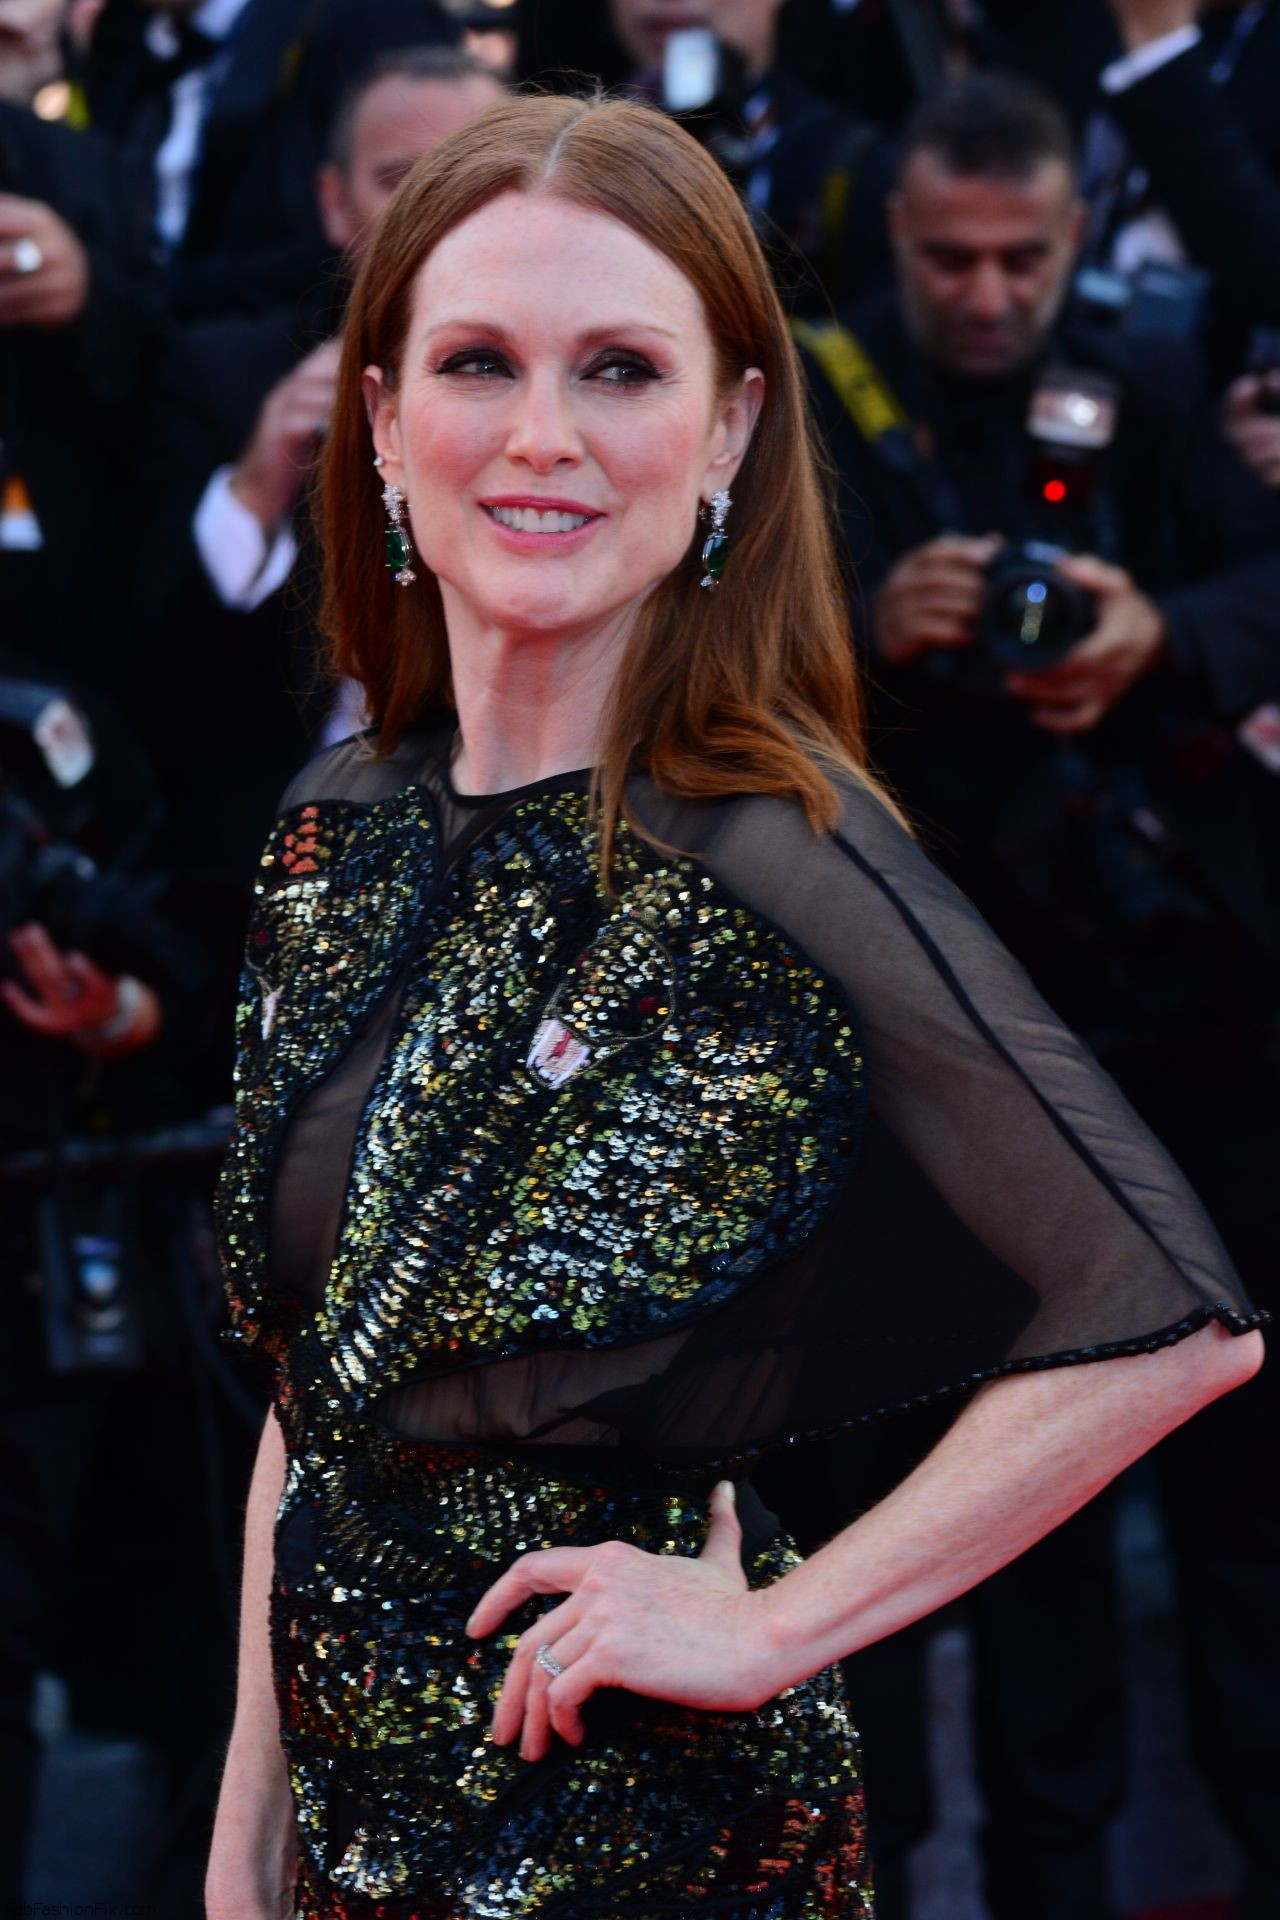 julianne-moore-opening-ceremony-at-palais-des-festivals-in-cannes-france-5-11-2016-1